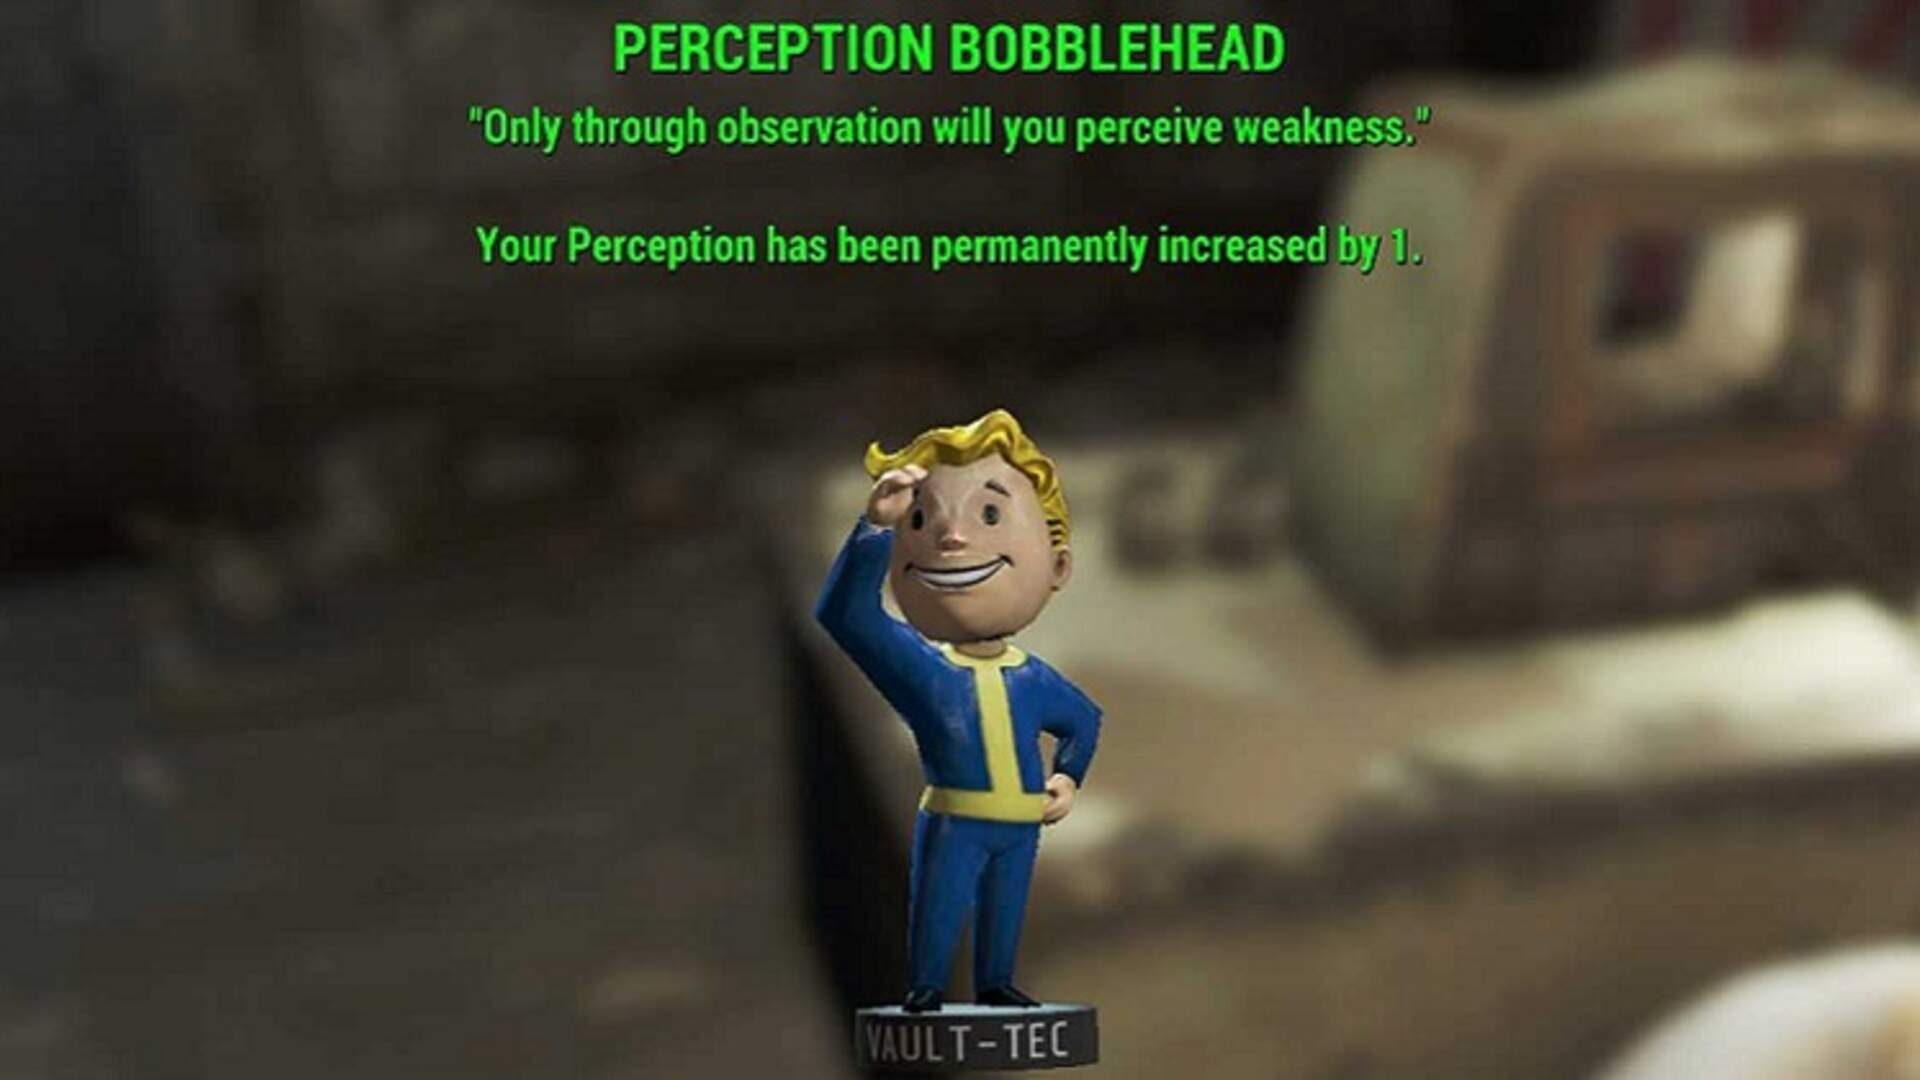 Fallout 4 Bobblehead Locations - Find all Fallout 4 Bobbleheads Guide